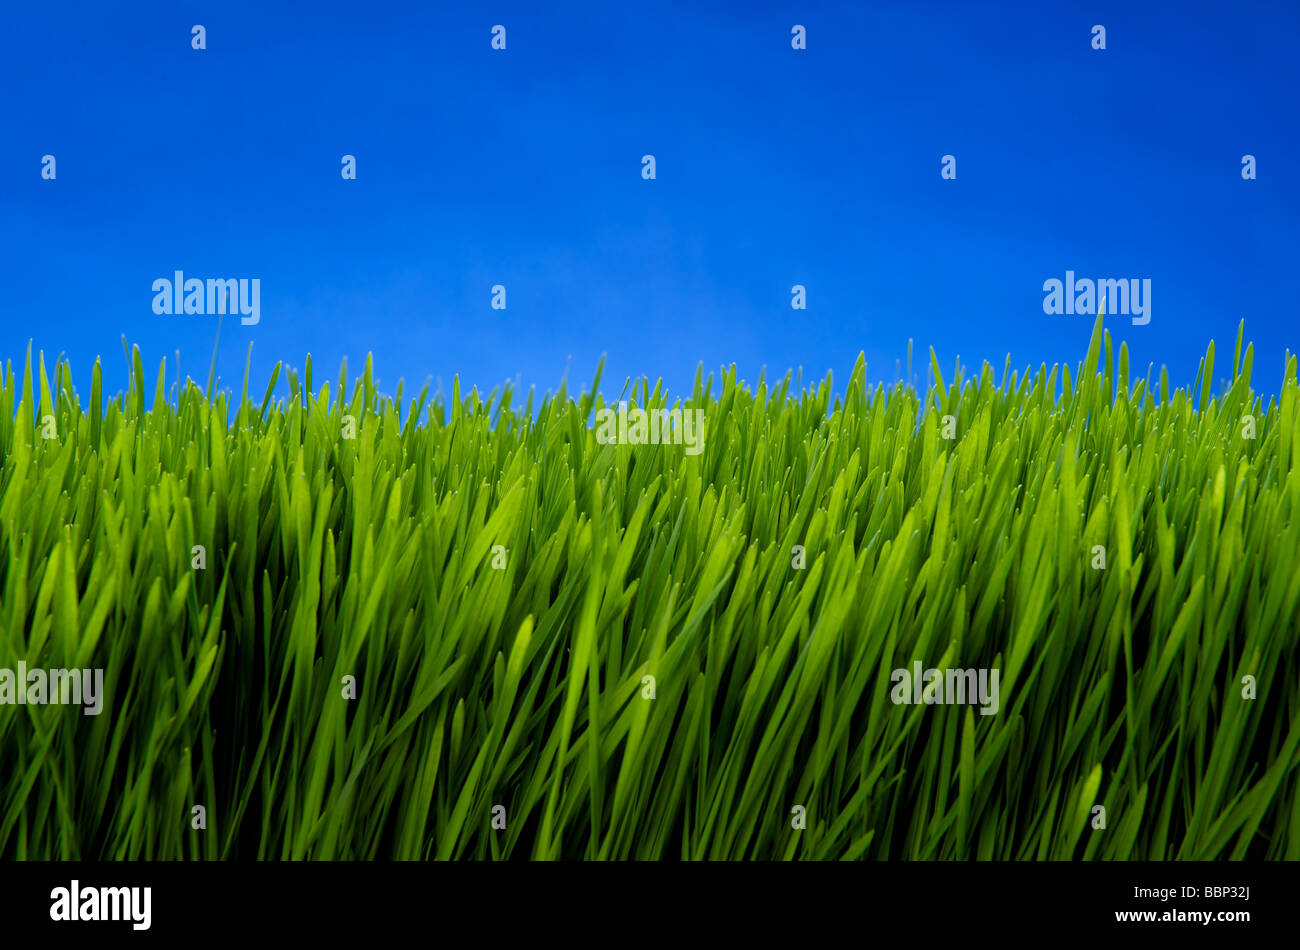 Close-up of wheat grass with sky blue background - Stock Image